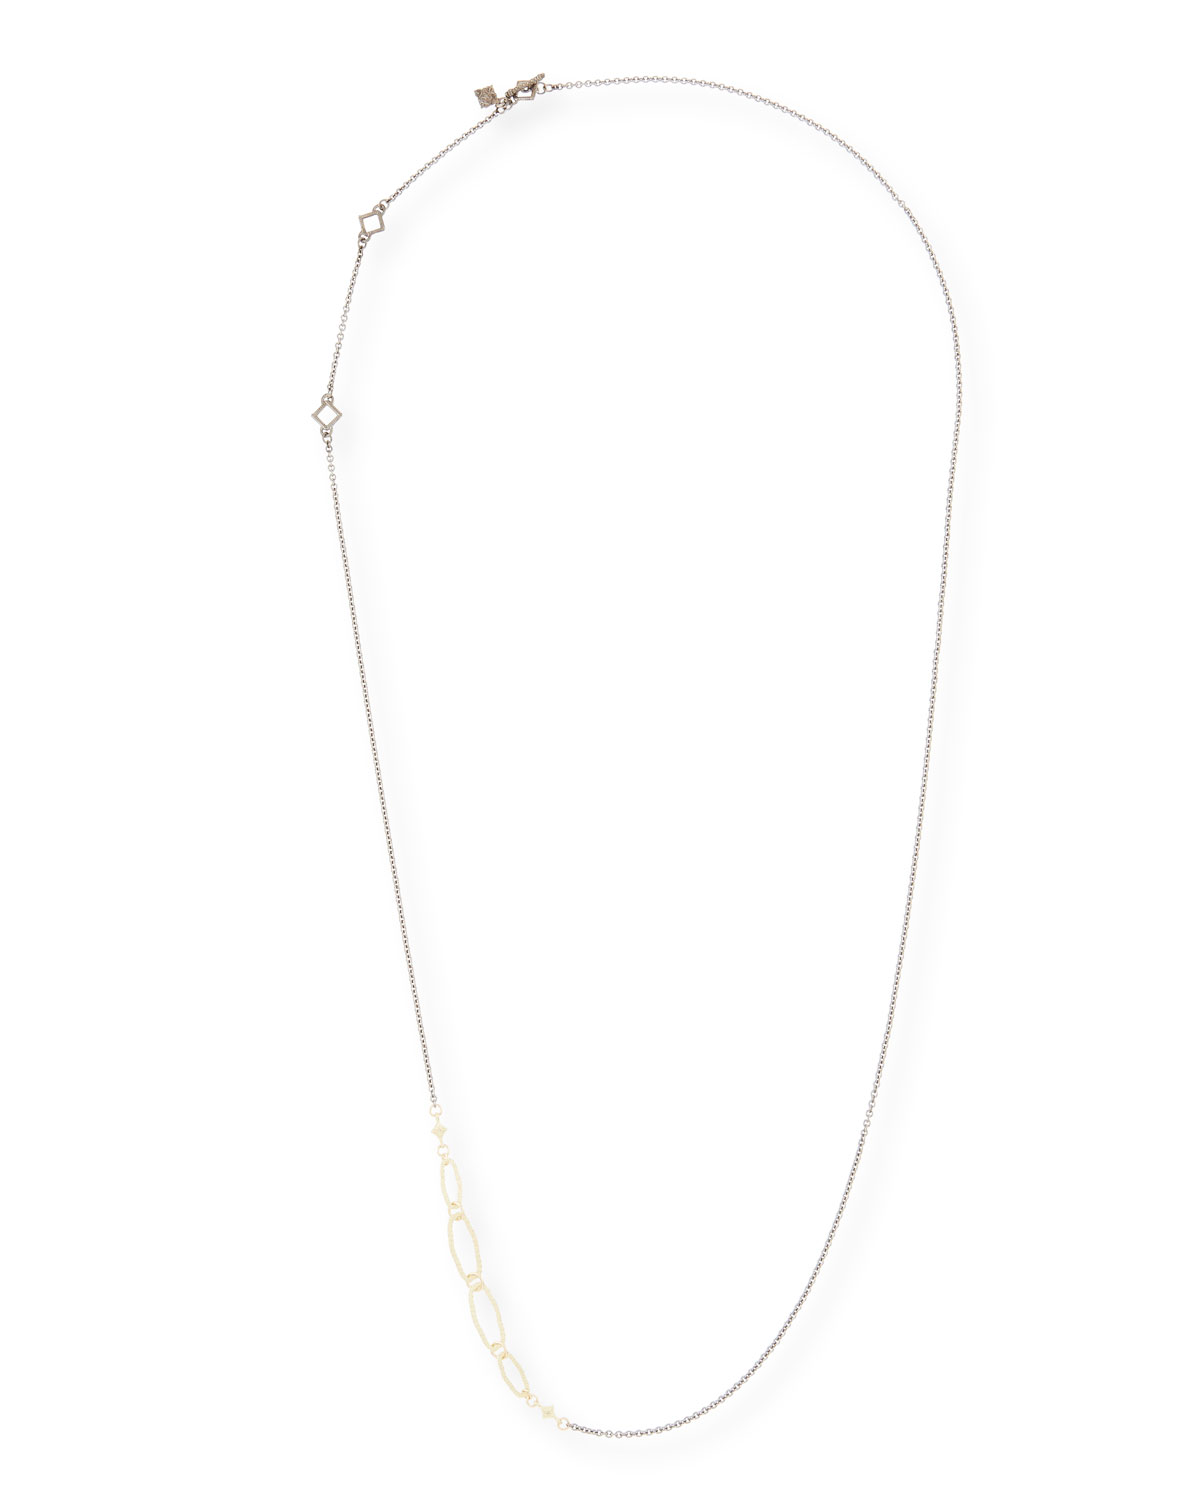 Old World Long Chain Necklace